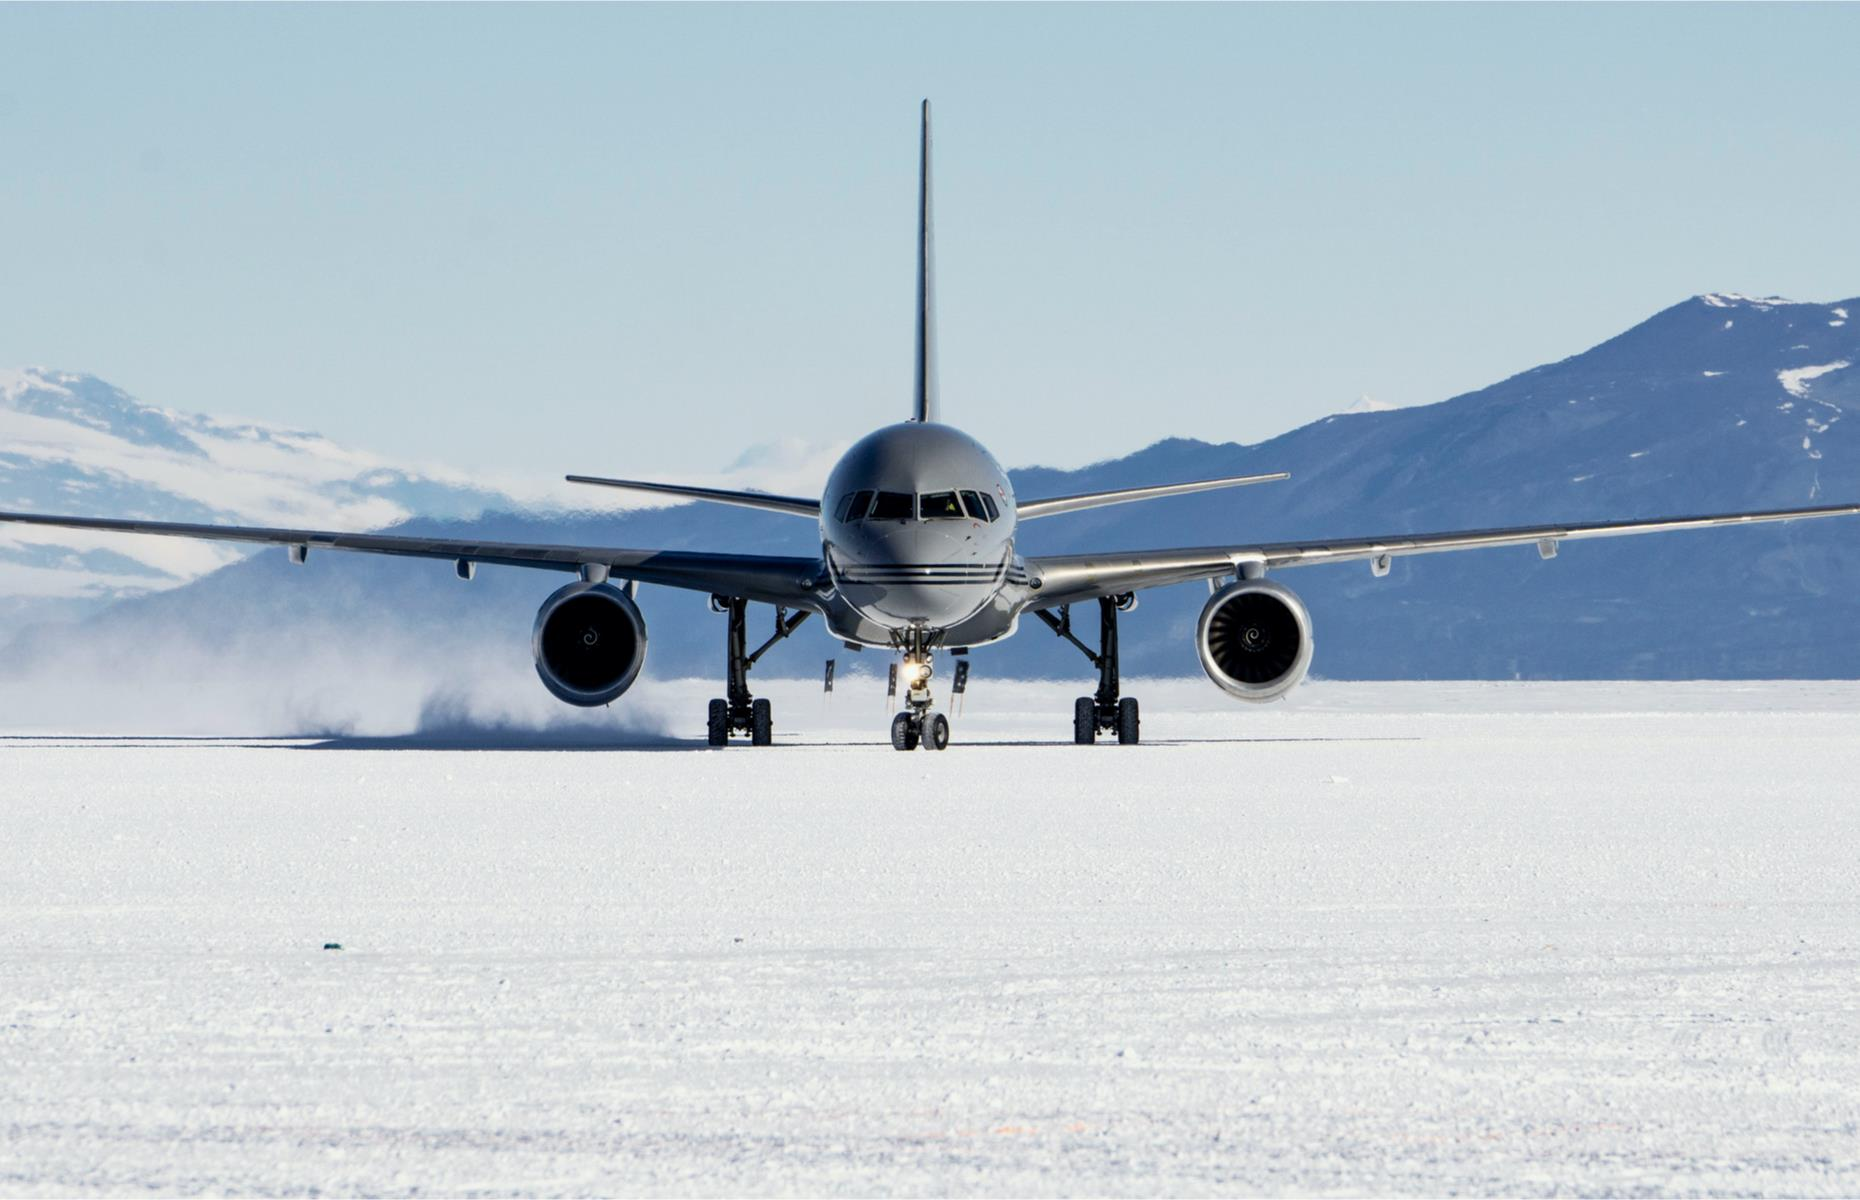 Slide 28 of 44: Instead of tarmac strip, the runway is a lengthy stretch of snow, compacted by heavy rollers to make it almost as hard as concrete. It's strong enough to contend with the weighty, two-wheeled cargo planes that bring supplies. Many of the smaller aircraft used in Antarctica also have retractable ski landing gear to stop them sinking into snowy surfaces.